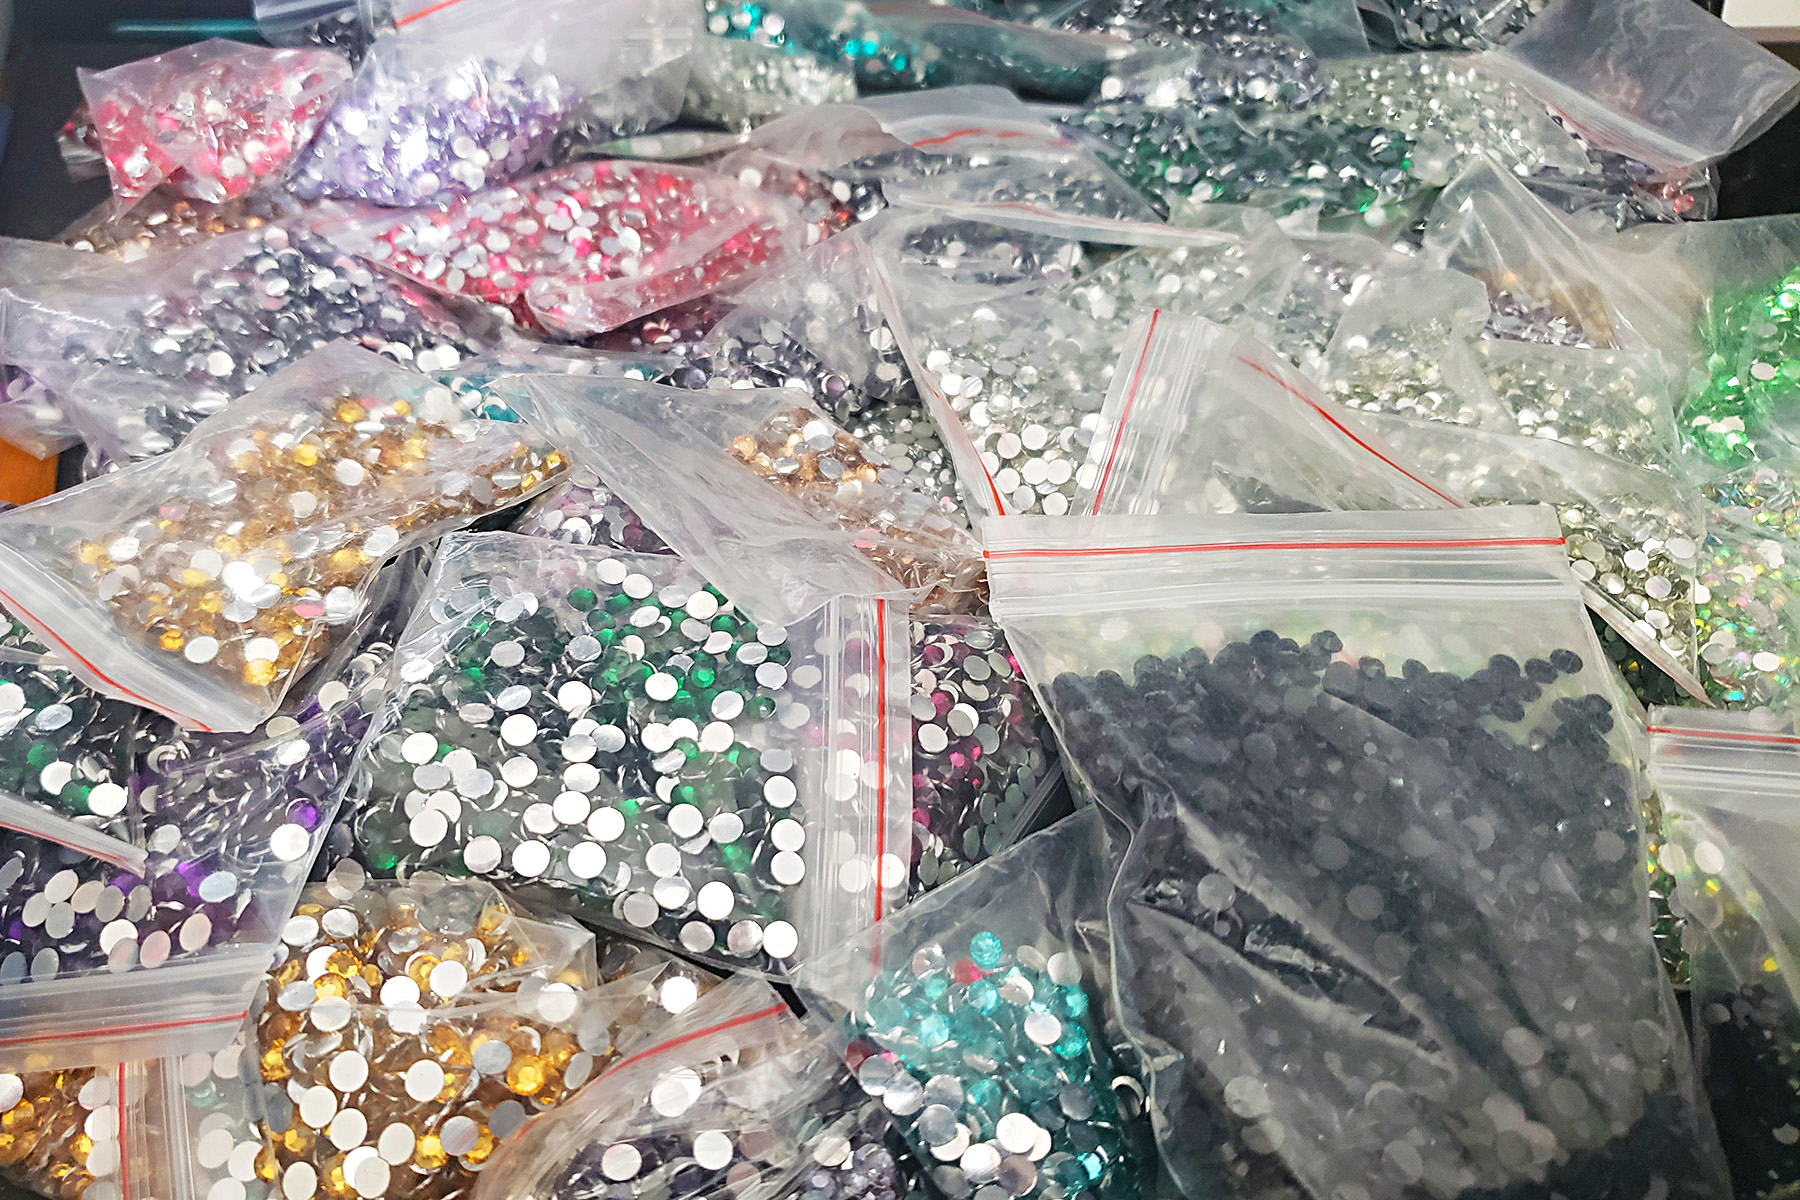 A close up view of a pile of bagged rhinestones in various colours.